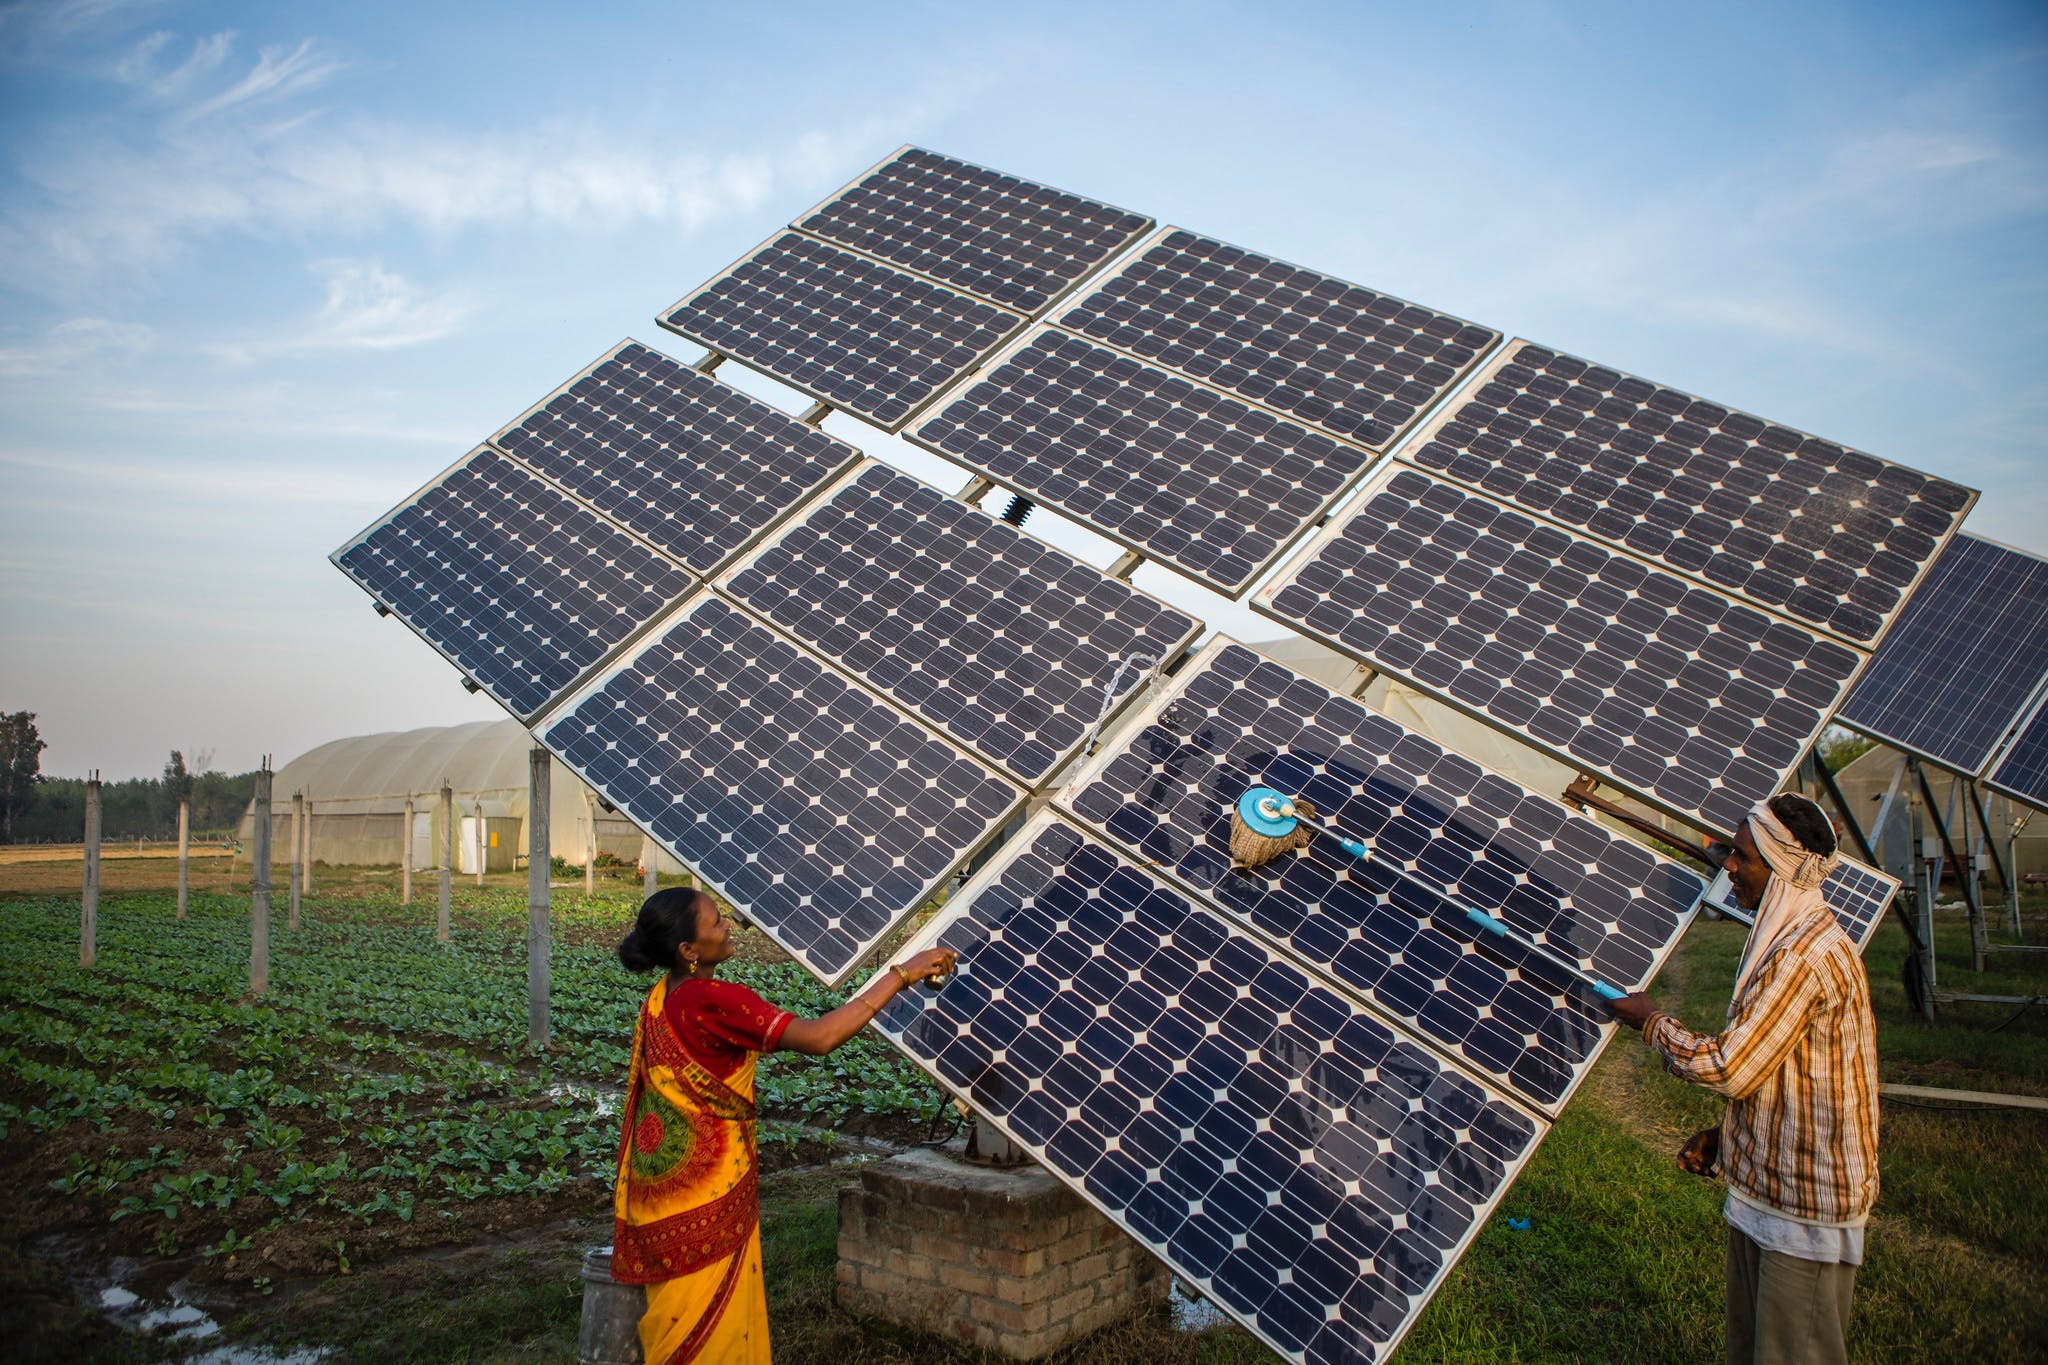 investment in renewables must triple by end of decade to curb climate change - Investment in renewables must triple by end of decade to curb climate change